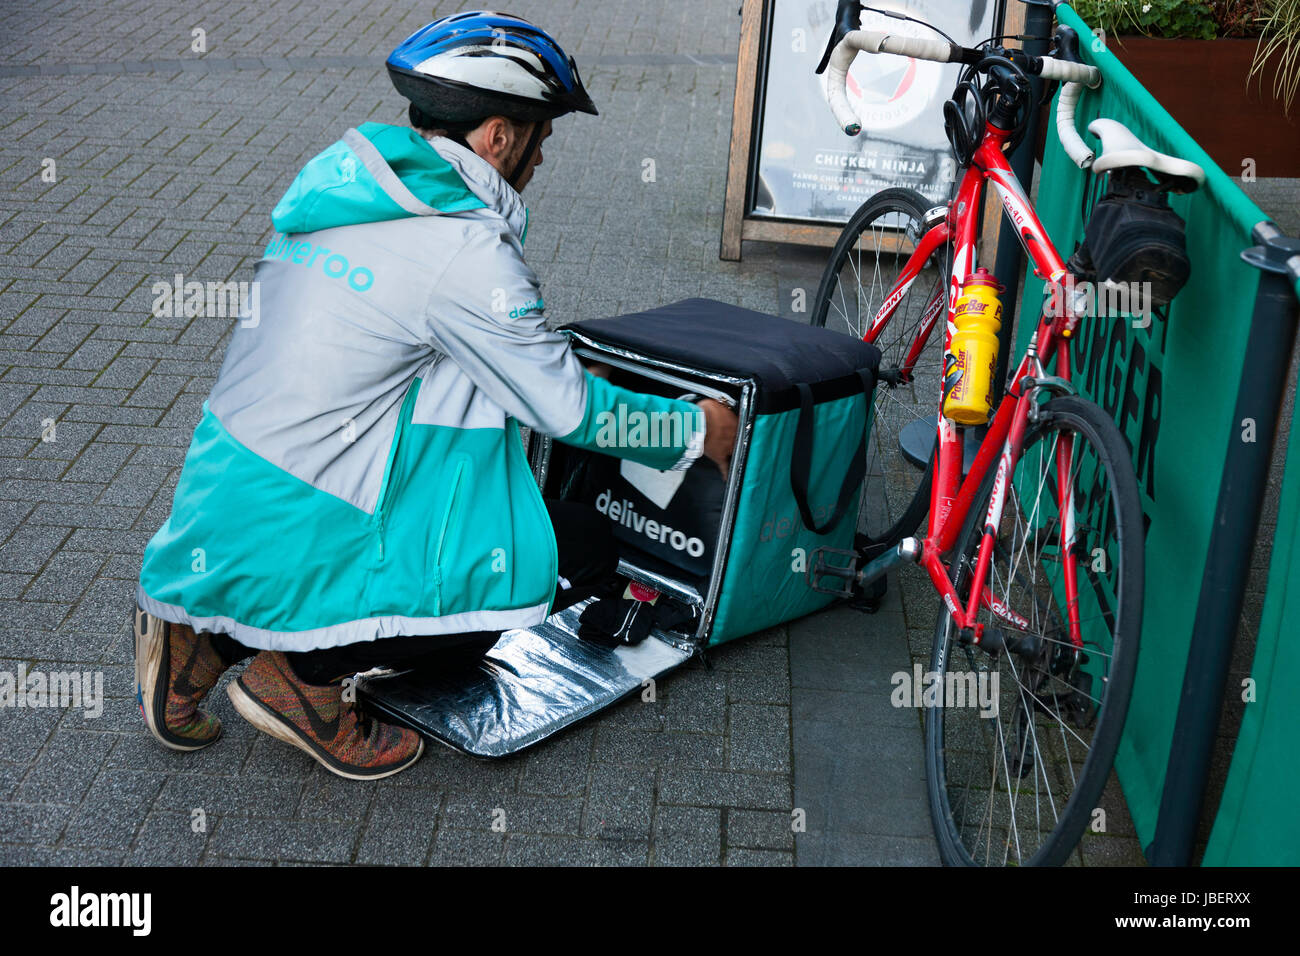 f165758c6fb Deliveroo takeaway food delivery Courier pedal cycle / push bike cyclist  making a delivery run in Royal Leamington Spa. U.K. (88)